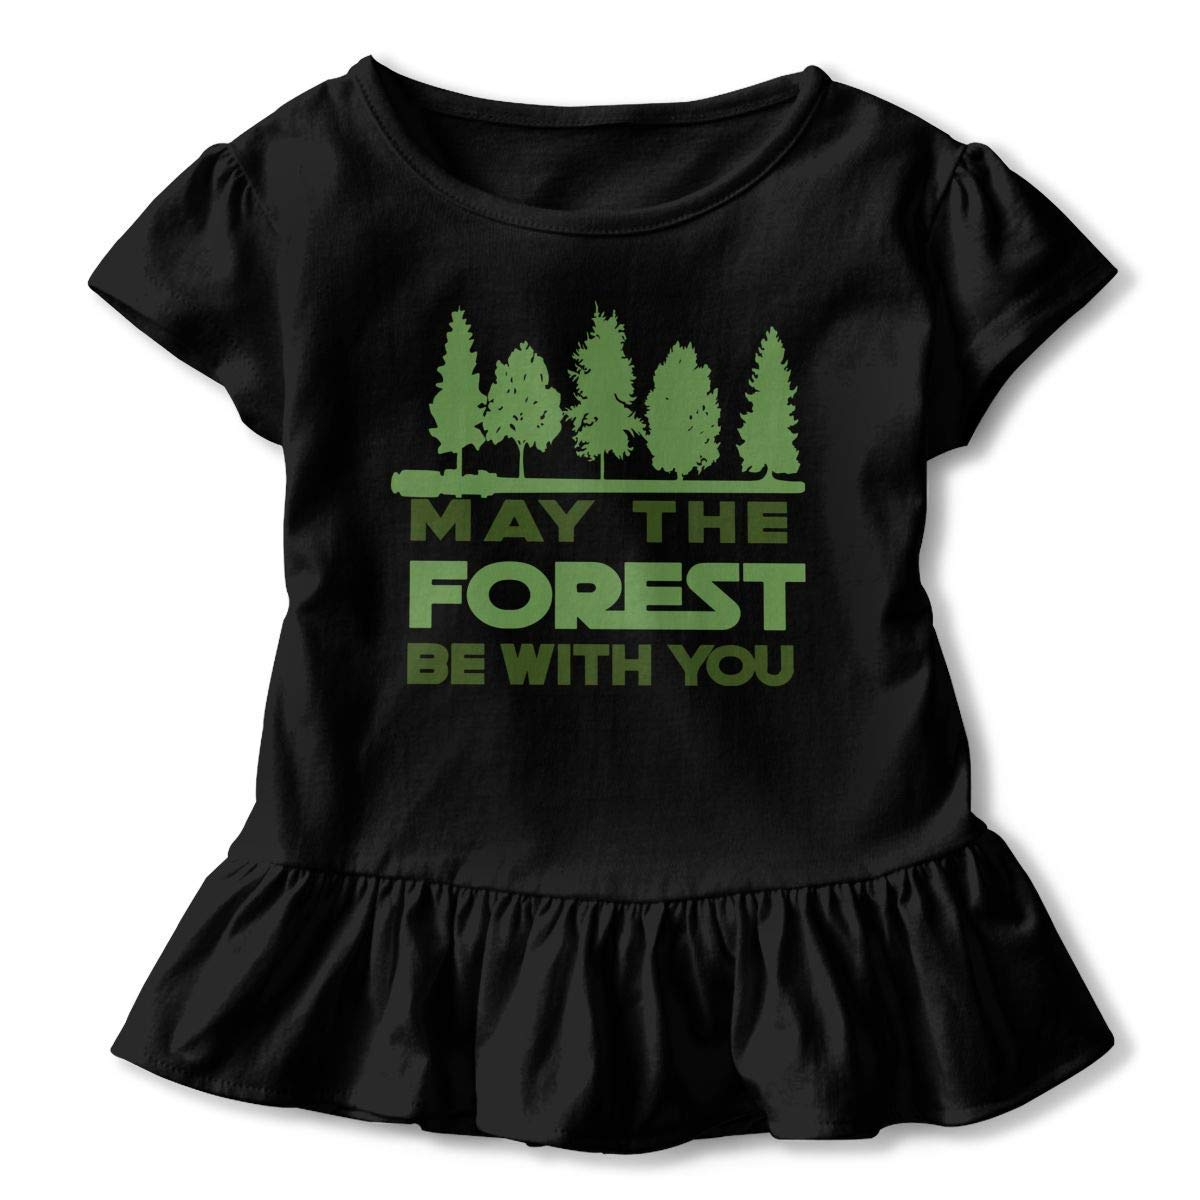 PMsunglasses Short Sleeve May The Forest BE with You T-Shirts for Kids 2-6T Fashion Sweatshirt with Falbala